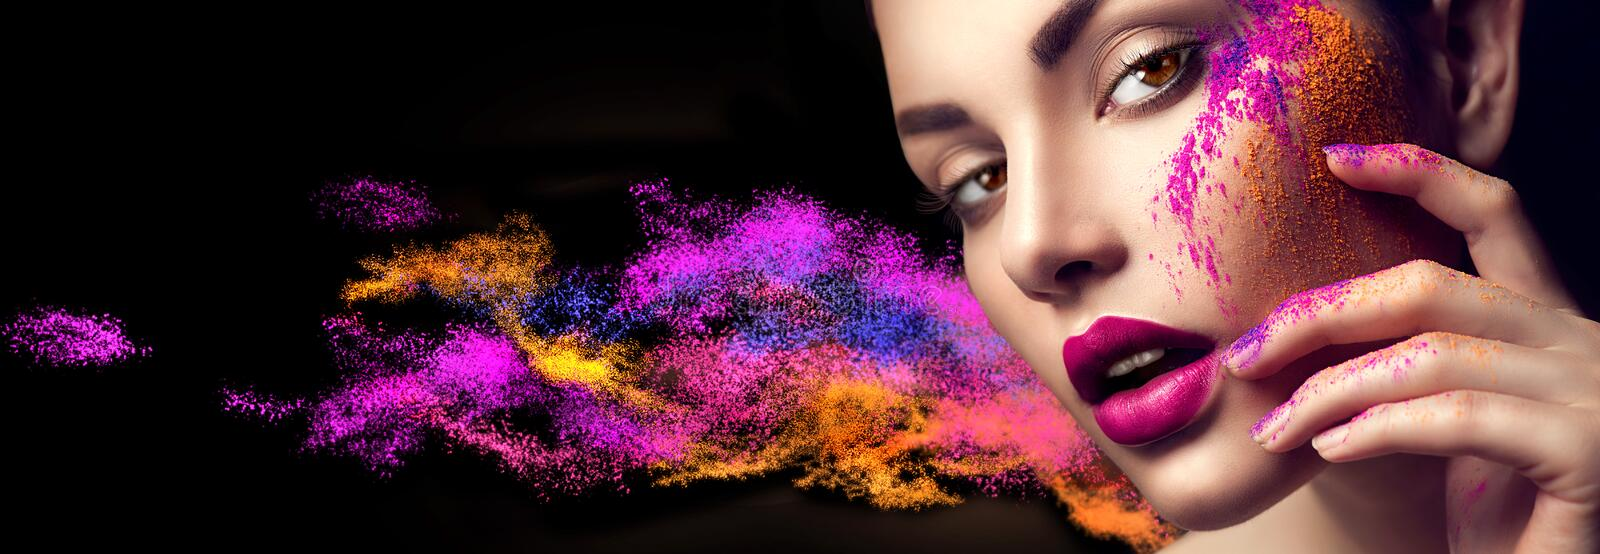 Woman with bright color makeup royalty free stock photos